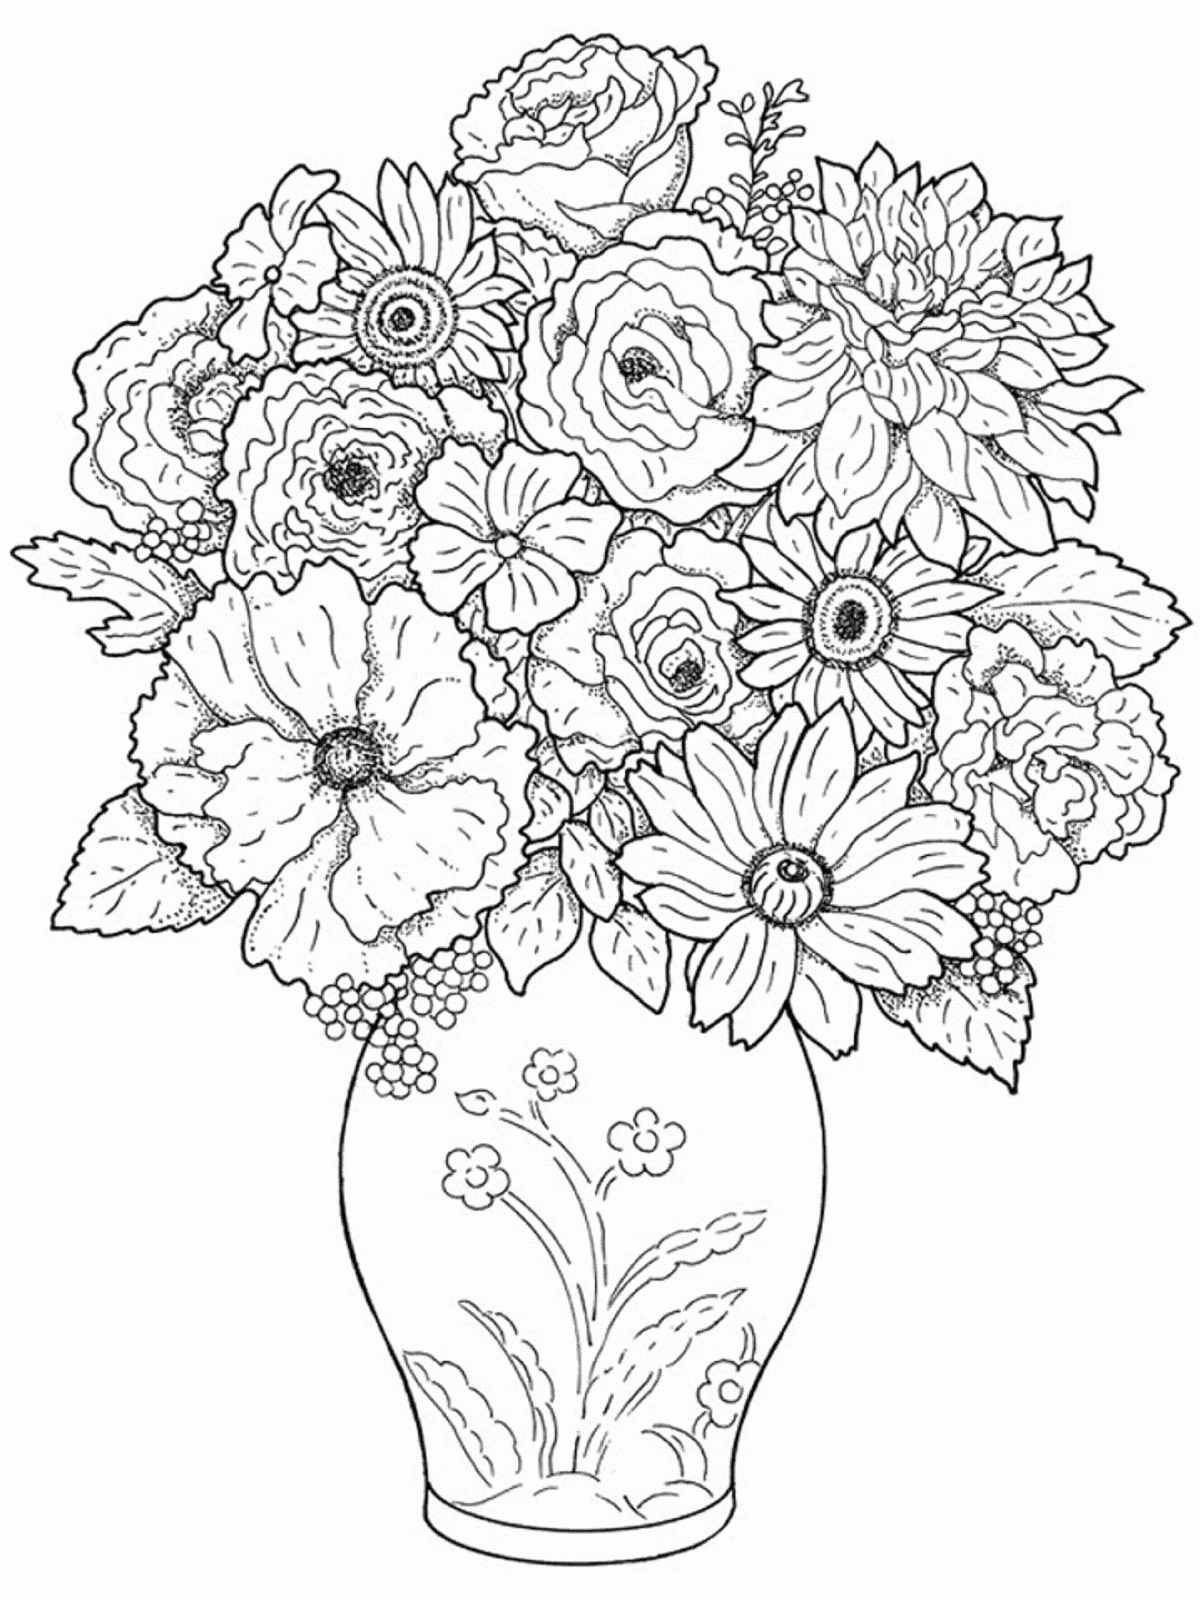 1200x1600 Hd Pencil Drawings Of Flower Pot Designs Drawings Of A Flower Pot